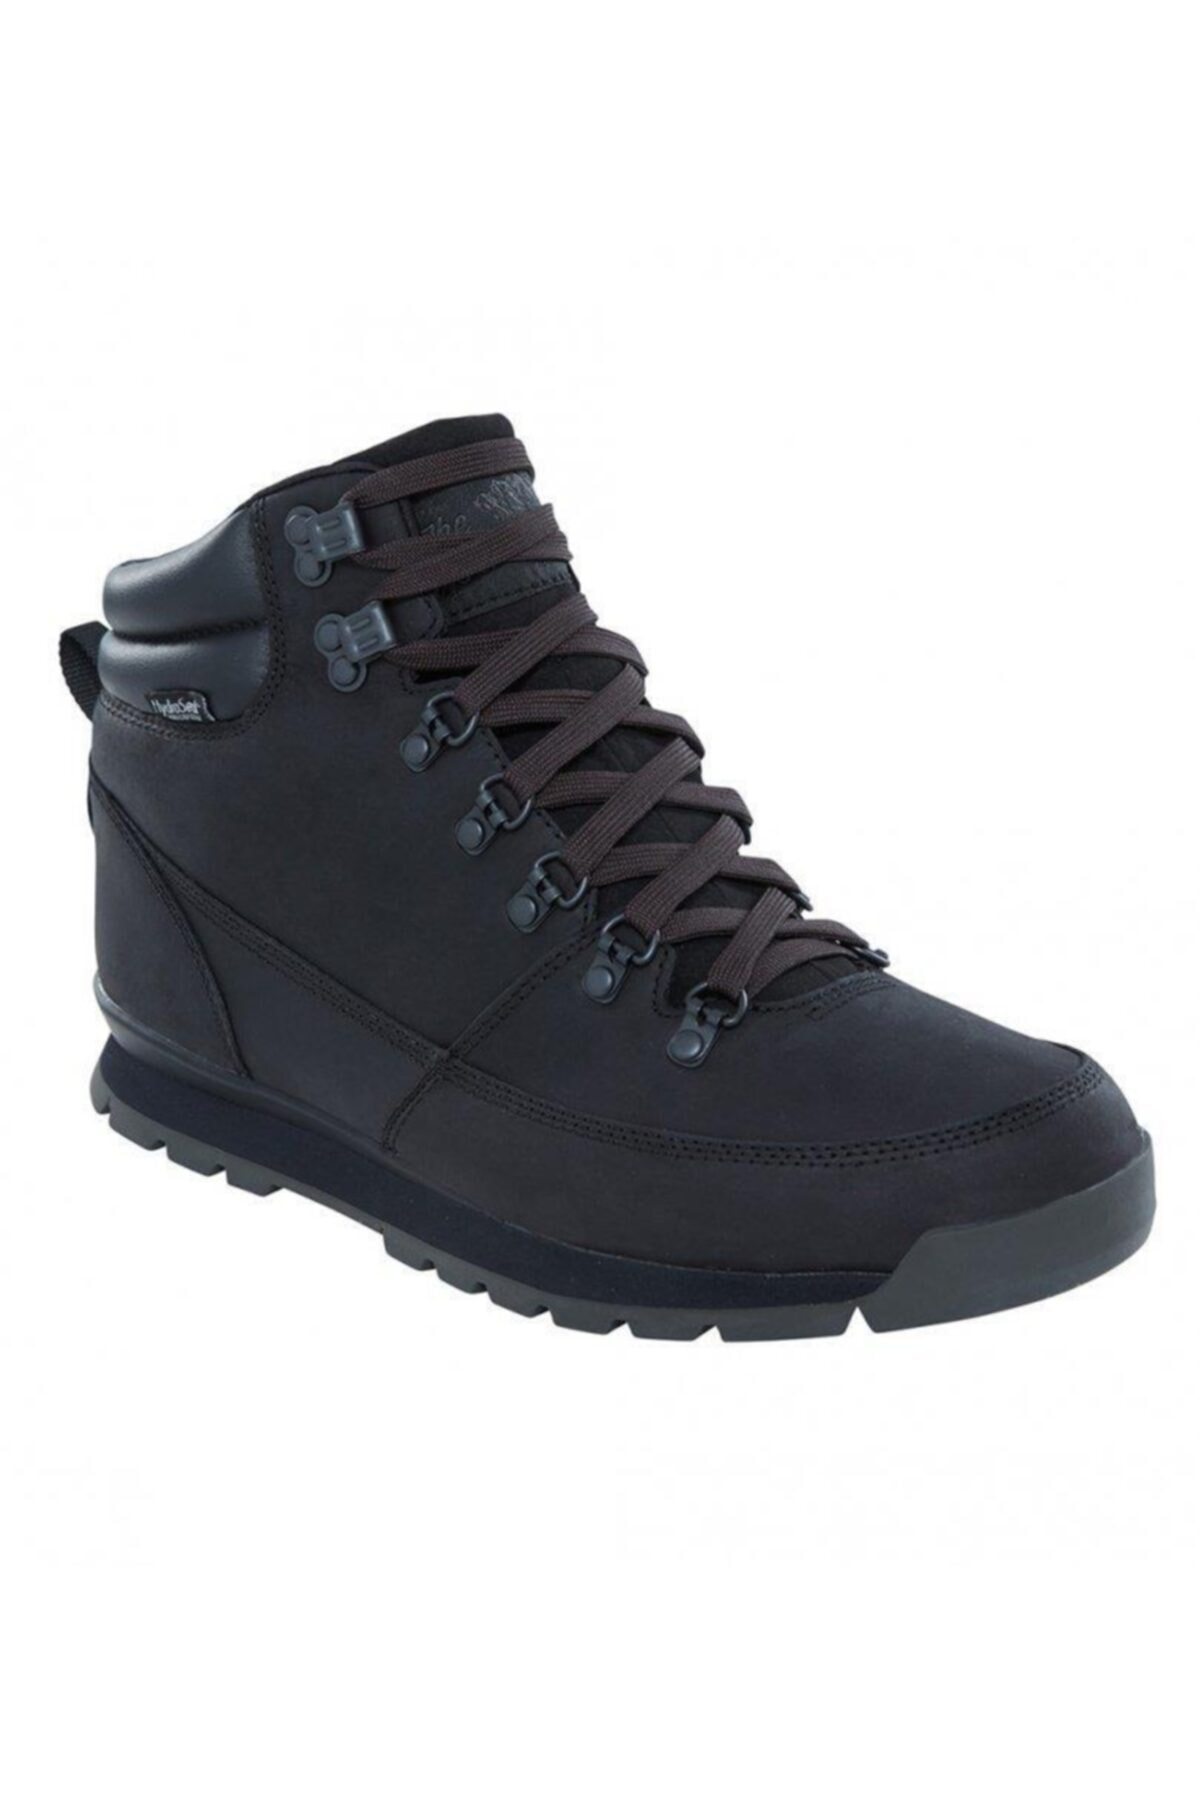 THE NORTH FACE Back To Berkeley Redux Leather Erkek Bot - T0cdl0kx8 1